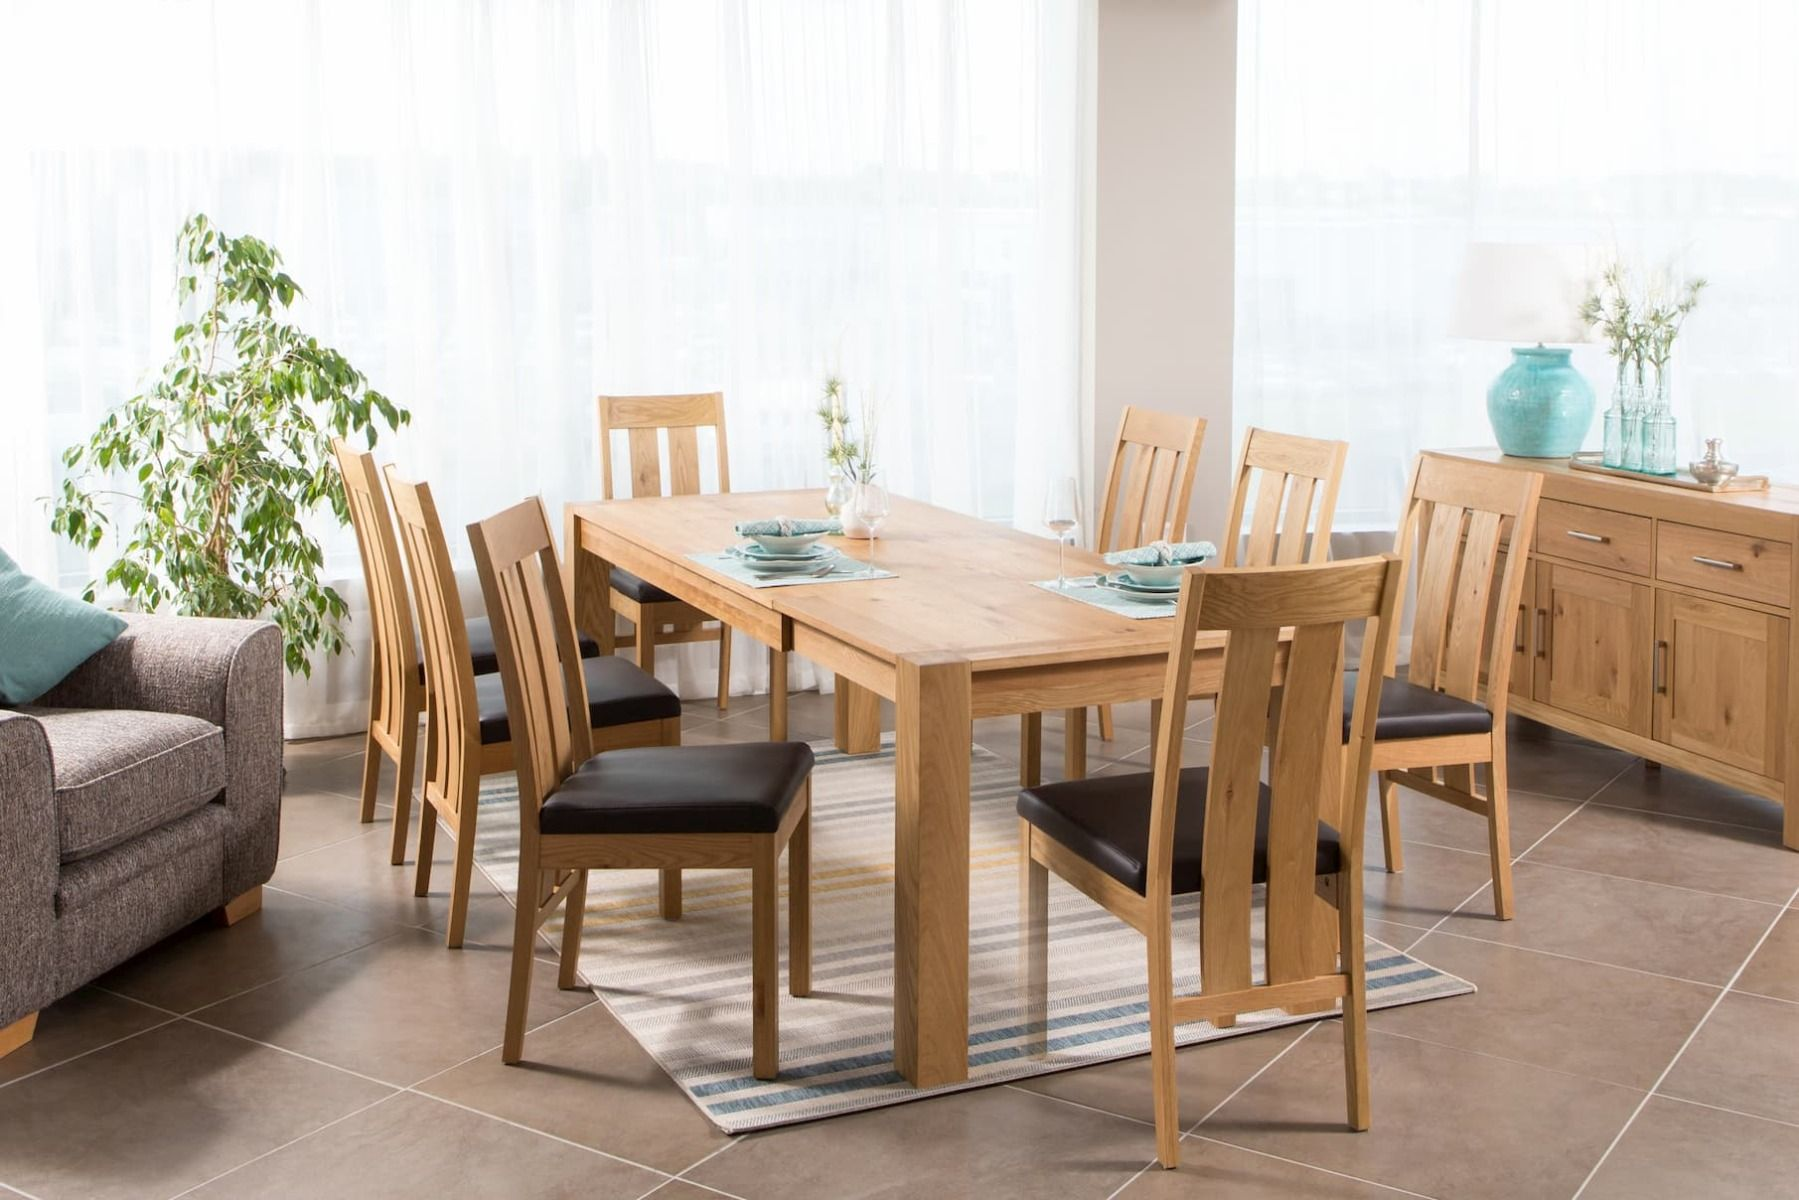 extendable dining table from ez living furniture